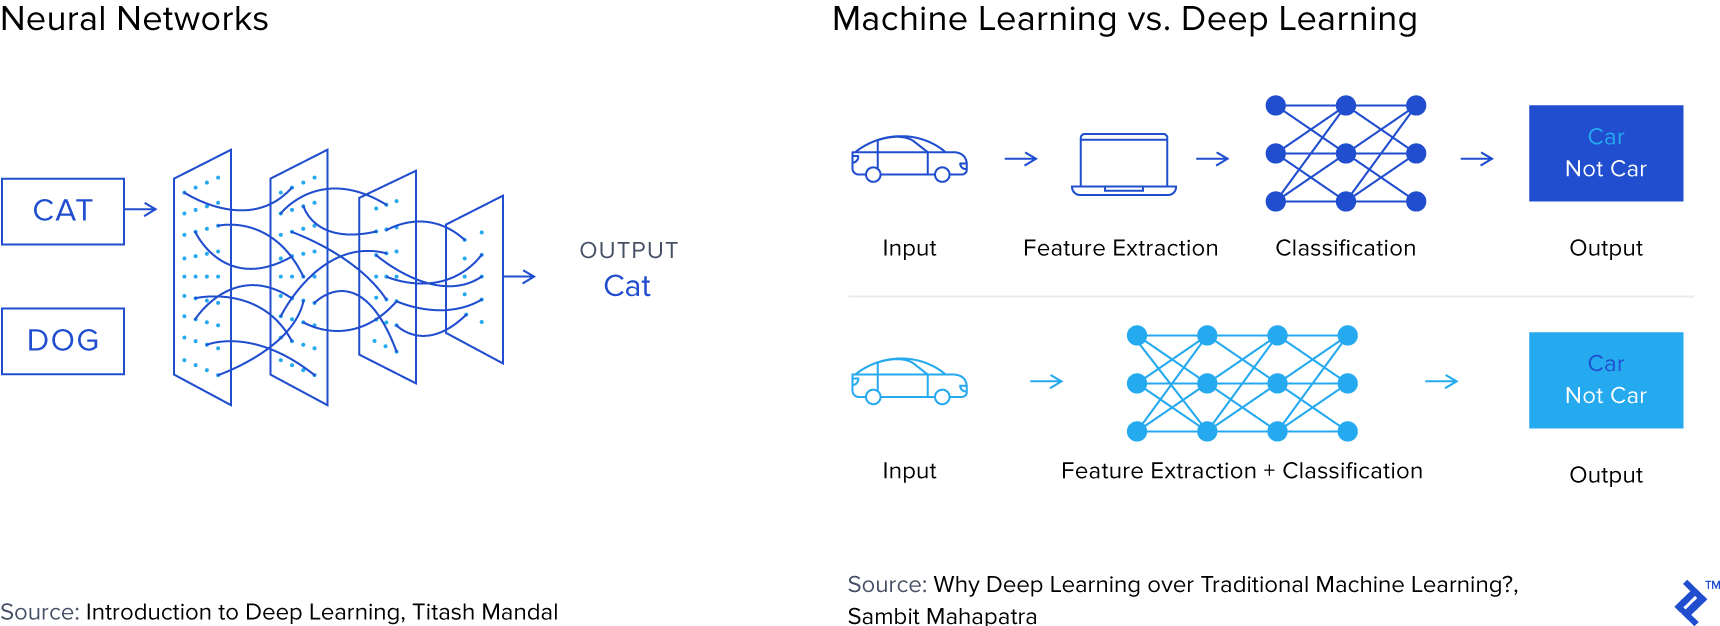 Charts illustrating how a neural network learns and the difference between classic machine learning and neural networks.